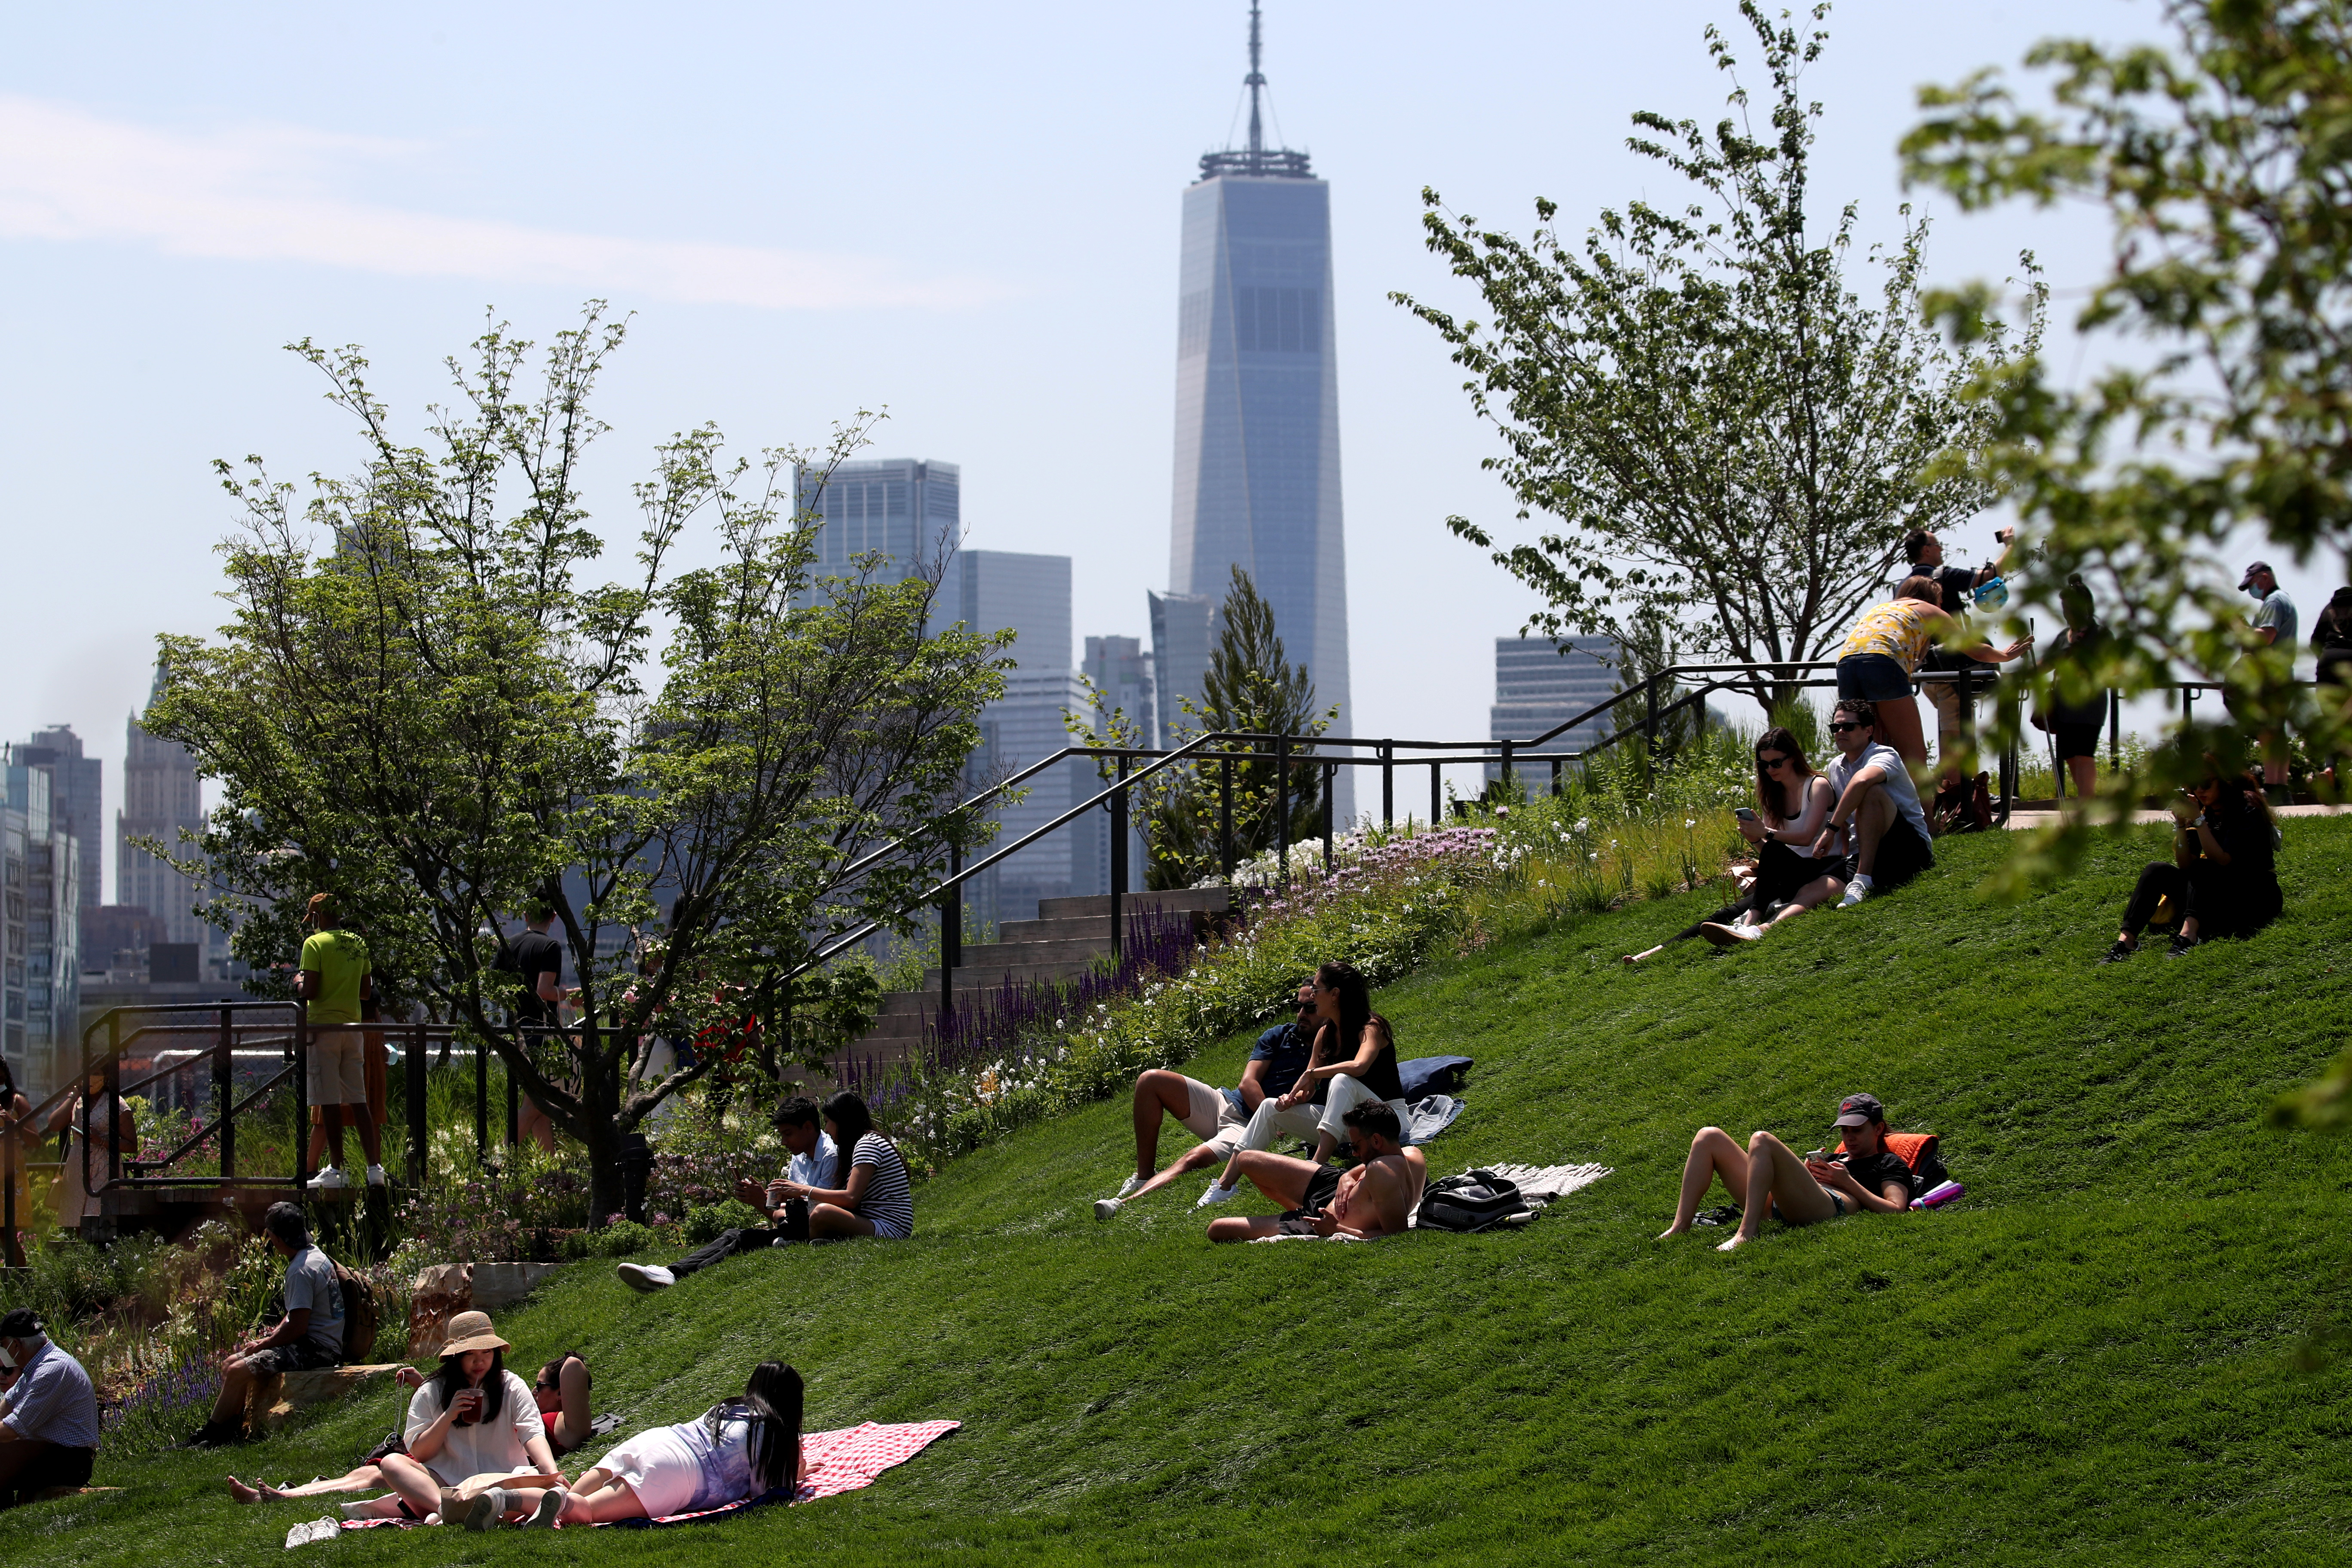 People visit Little Island Park, almost three acres of new public park space which sits on stilts over the Hudson River and the remnants of Pier 54 in the larger Hudson River Park, on Manhattan's West Side, during the park's opening day in New York City, New York, U.S., May 21, 2021. REUTERS/Mike Segar